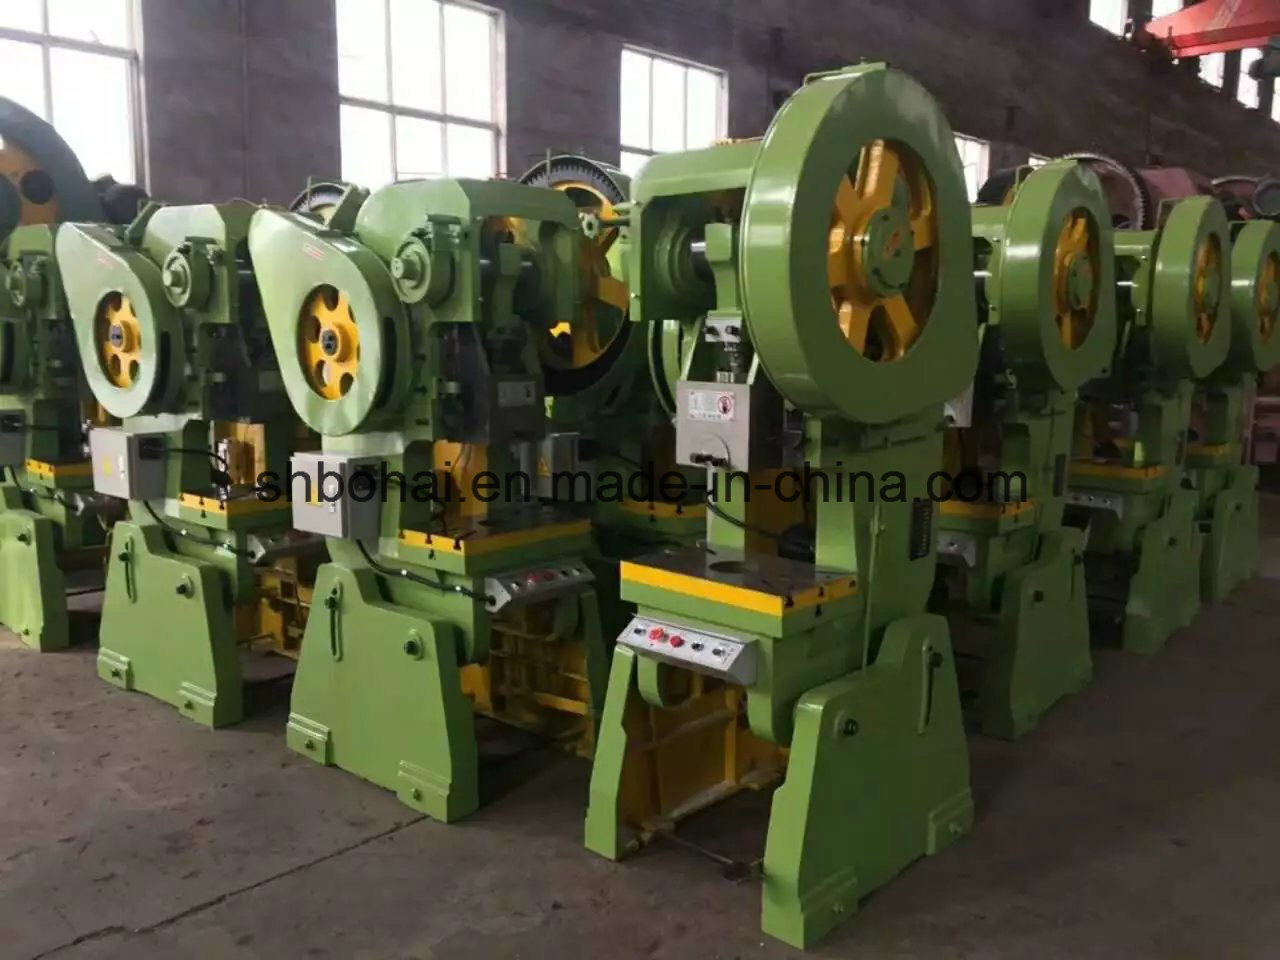 Jb23 Series 100t Power Press Machine Wih Mechanical Drive (J23-100T)